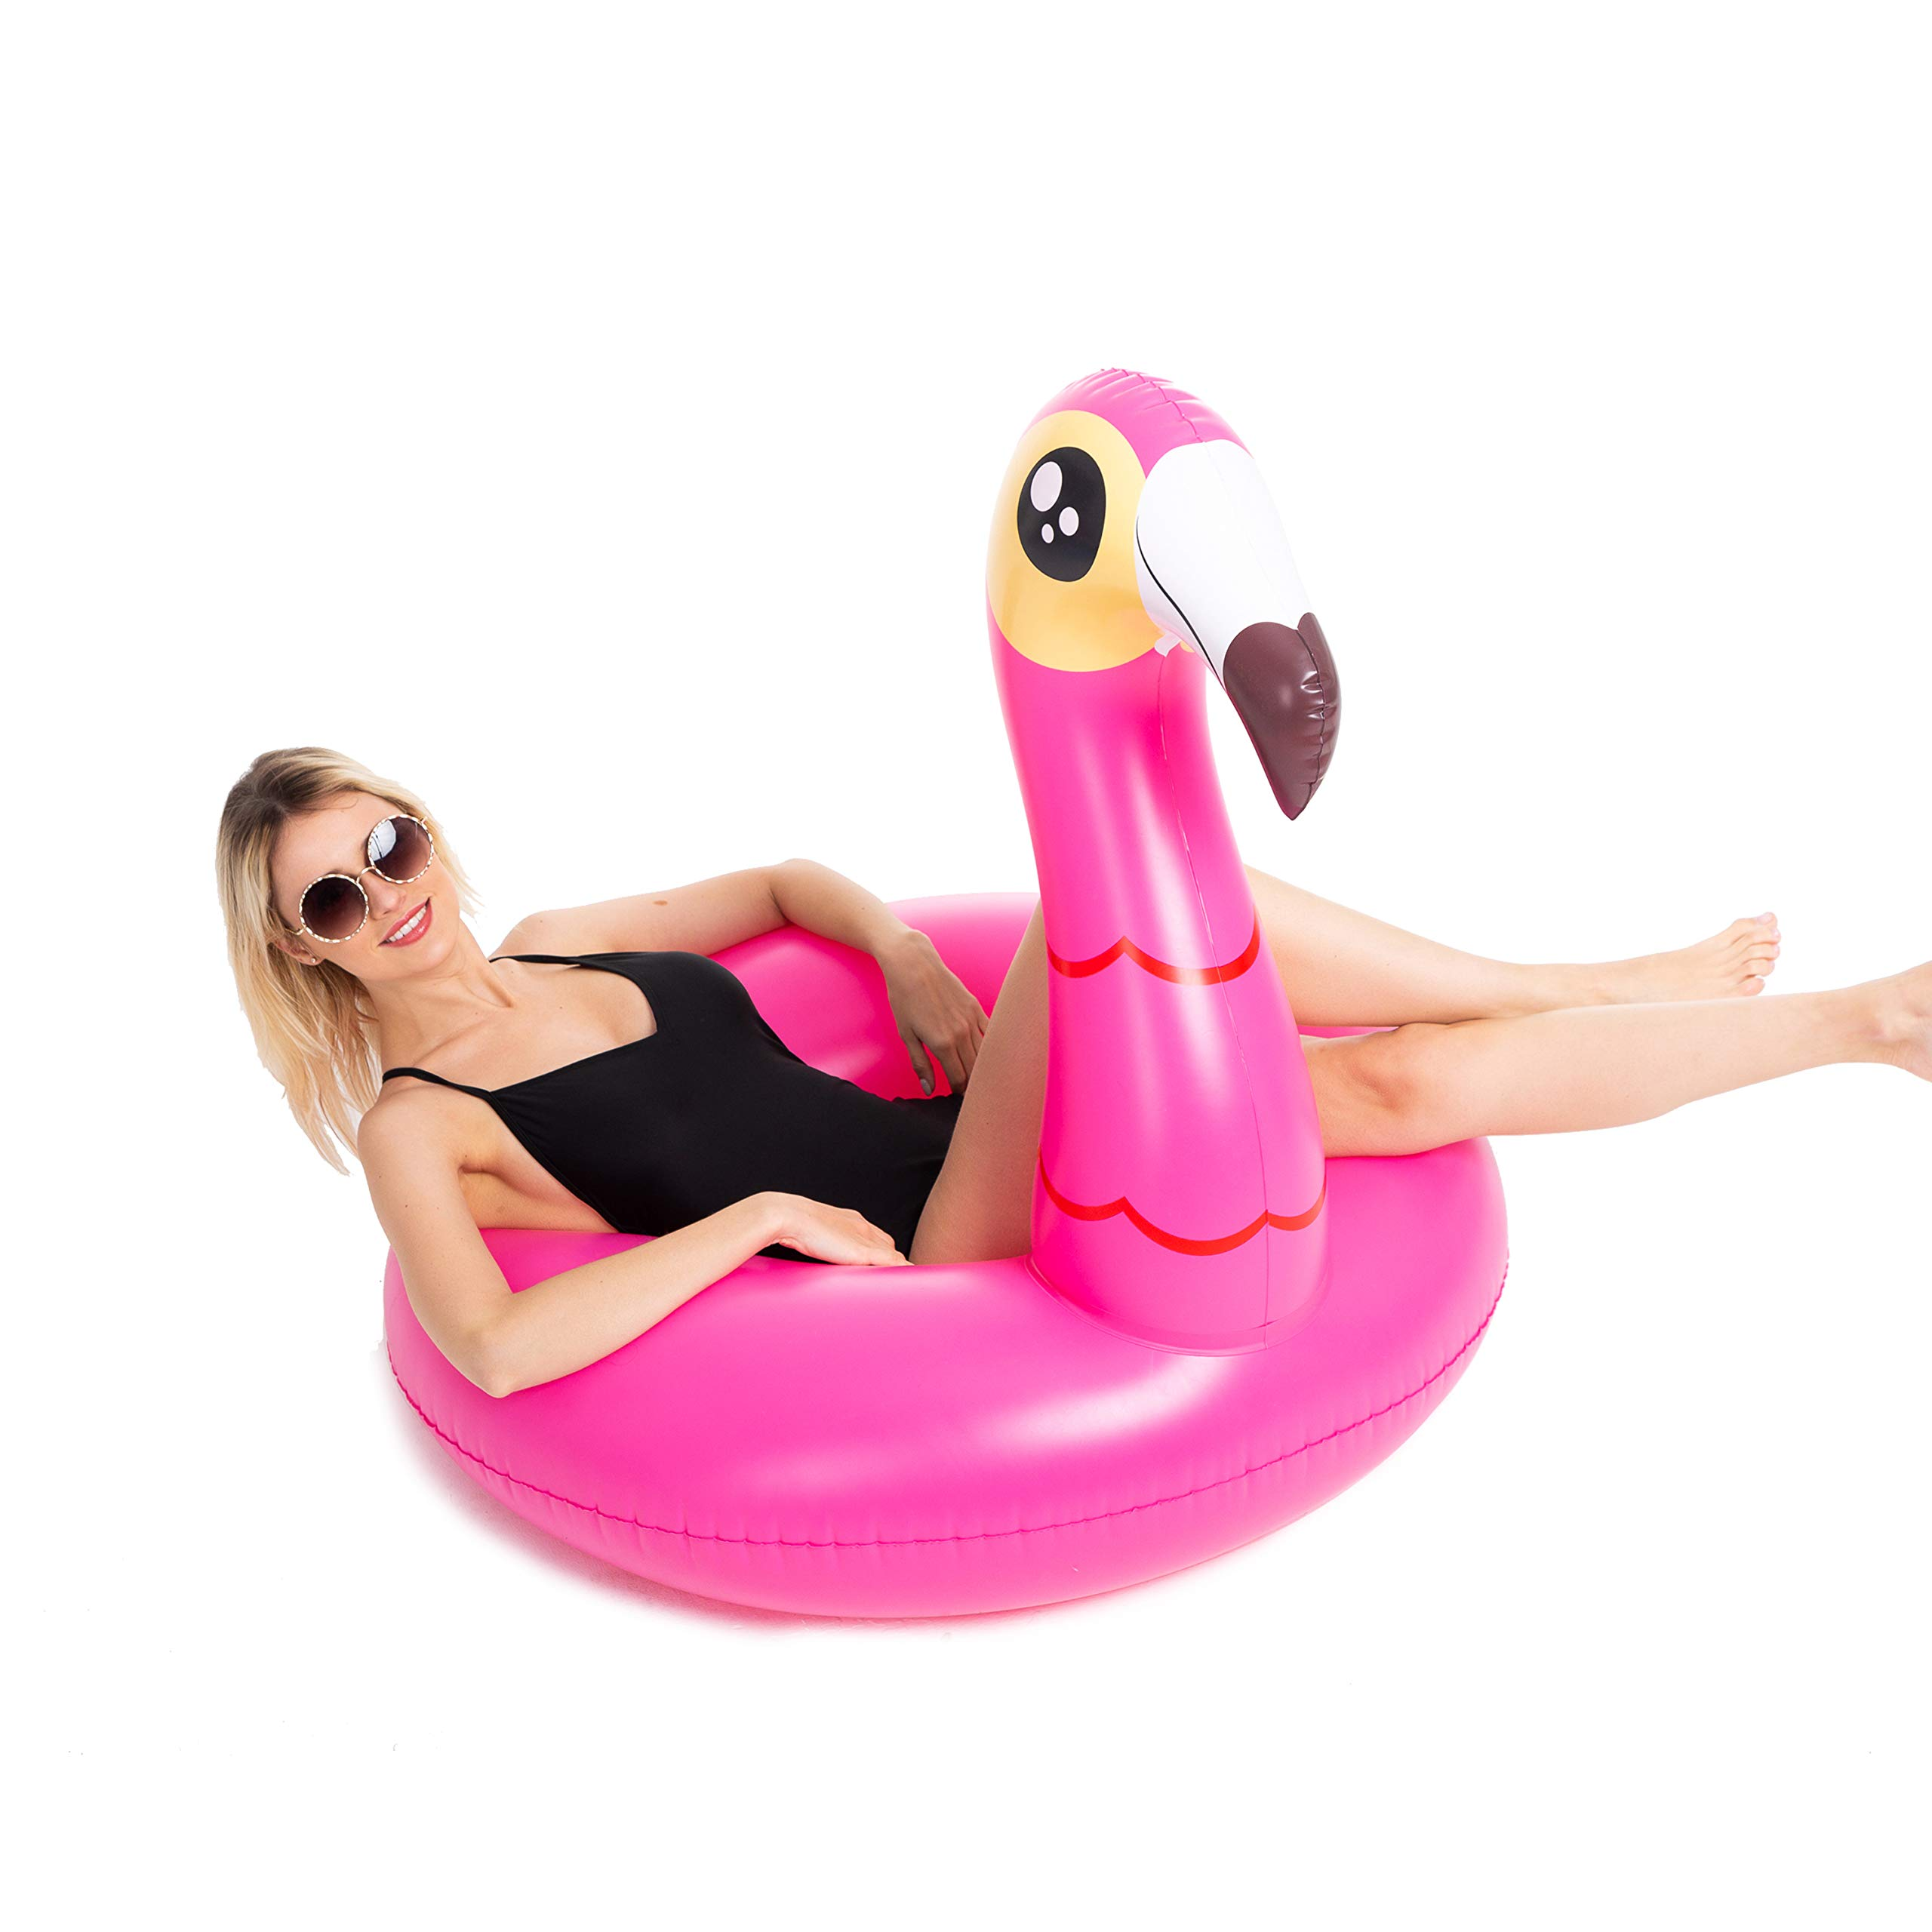 JOYIN Inflatable Flamingo and Unicorn Pool Float 2 Pack, Fun Beach Floaties, Swim Party Toys, Summer Pool Raft Lounger for Adults & Kids (Inflates to Over 4ft. Wide) by JOYIN (Image #4)